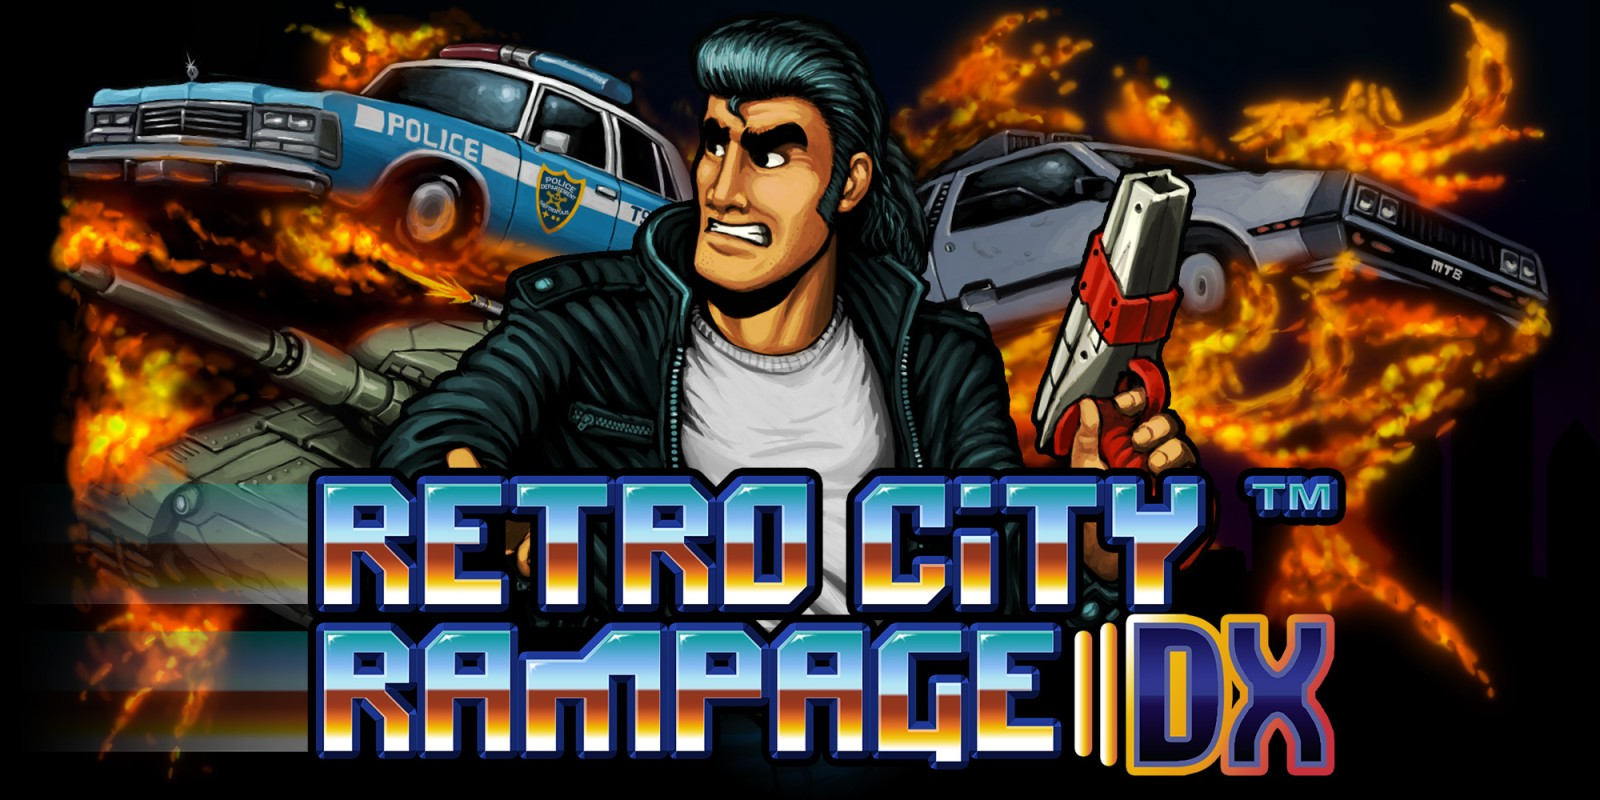 Retro city rampage dx free download gametrex - Dx images download ...